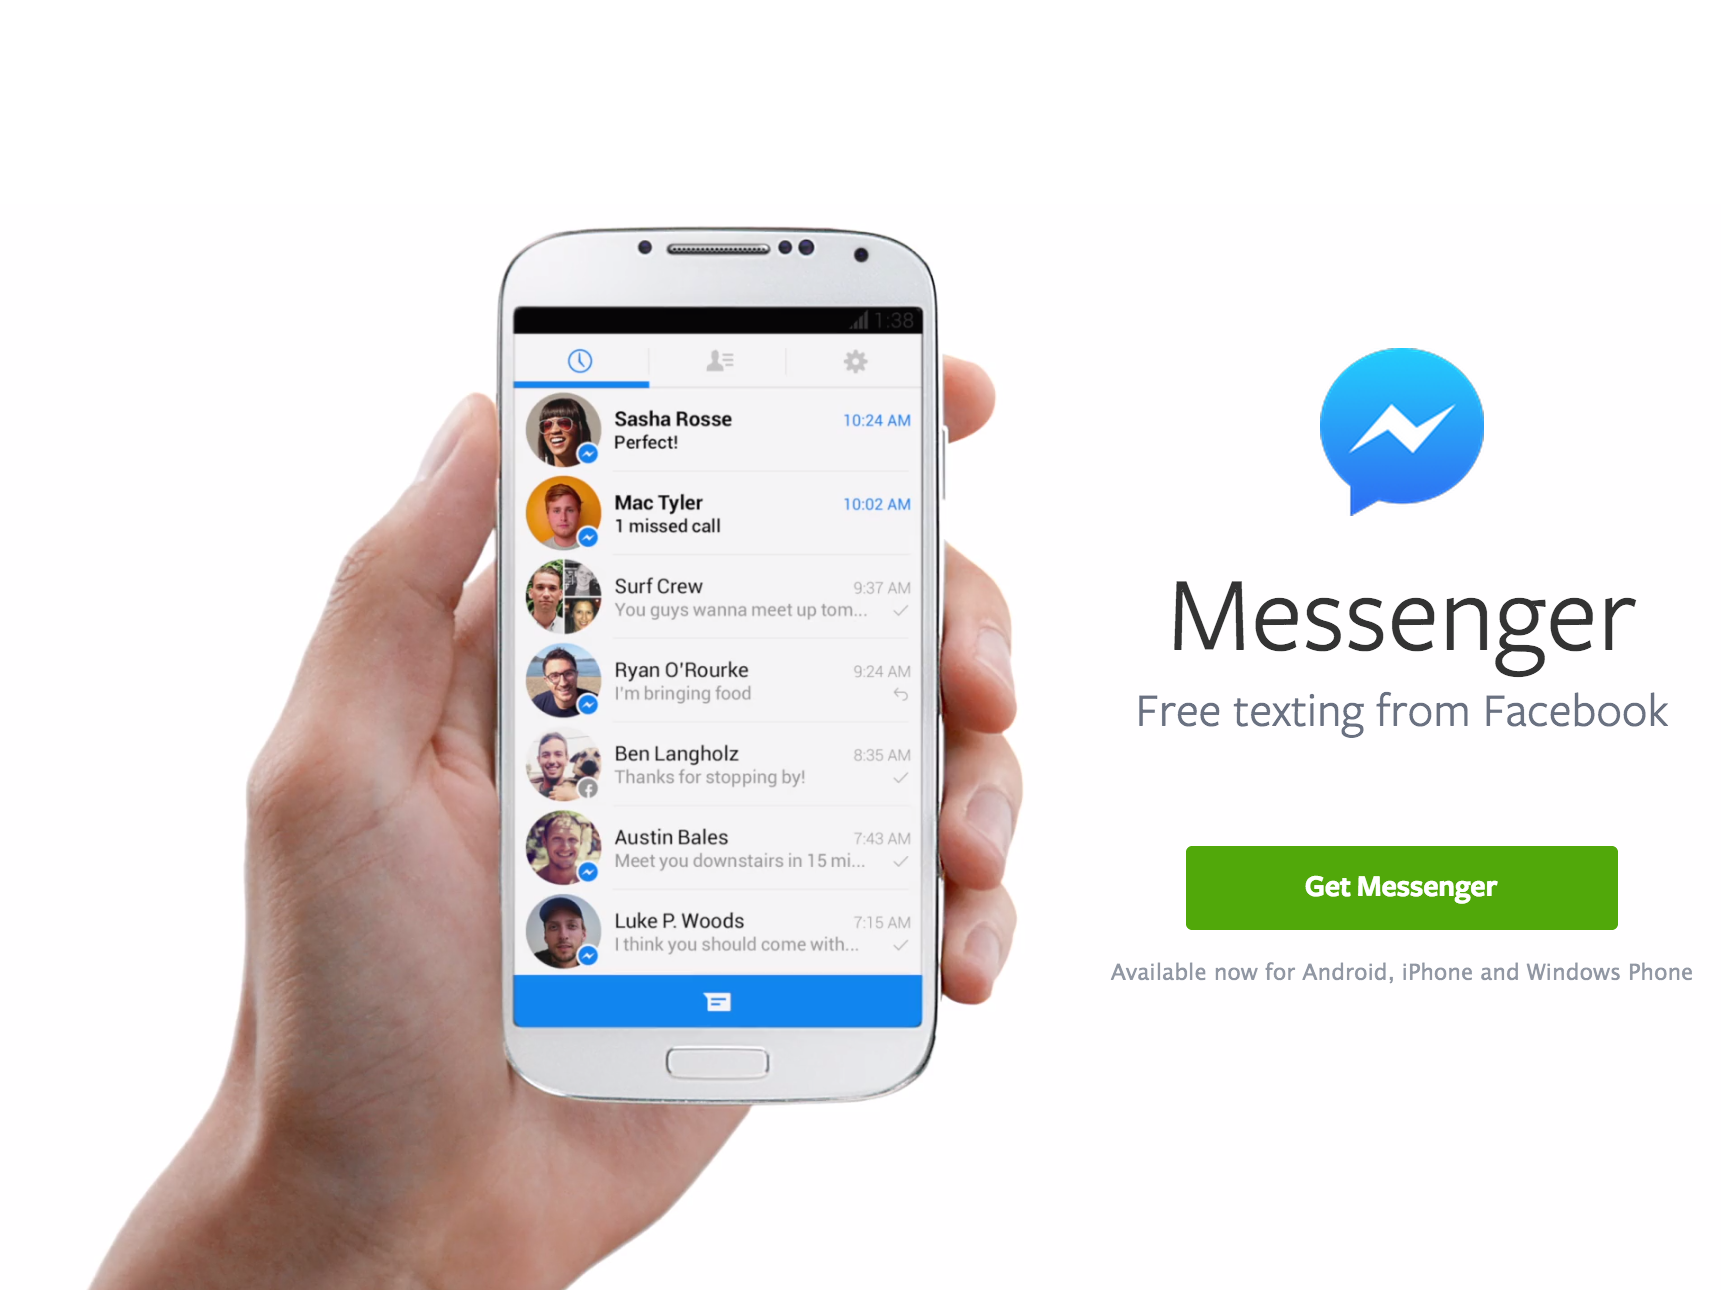 Facebook Messenger crosses 1 billion downloads in Google Play store